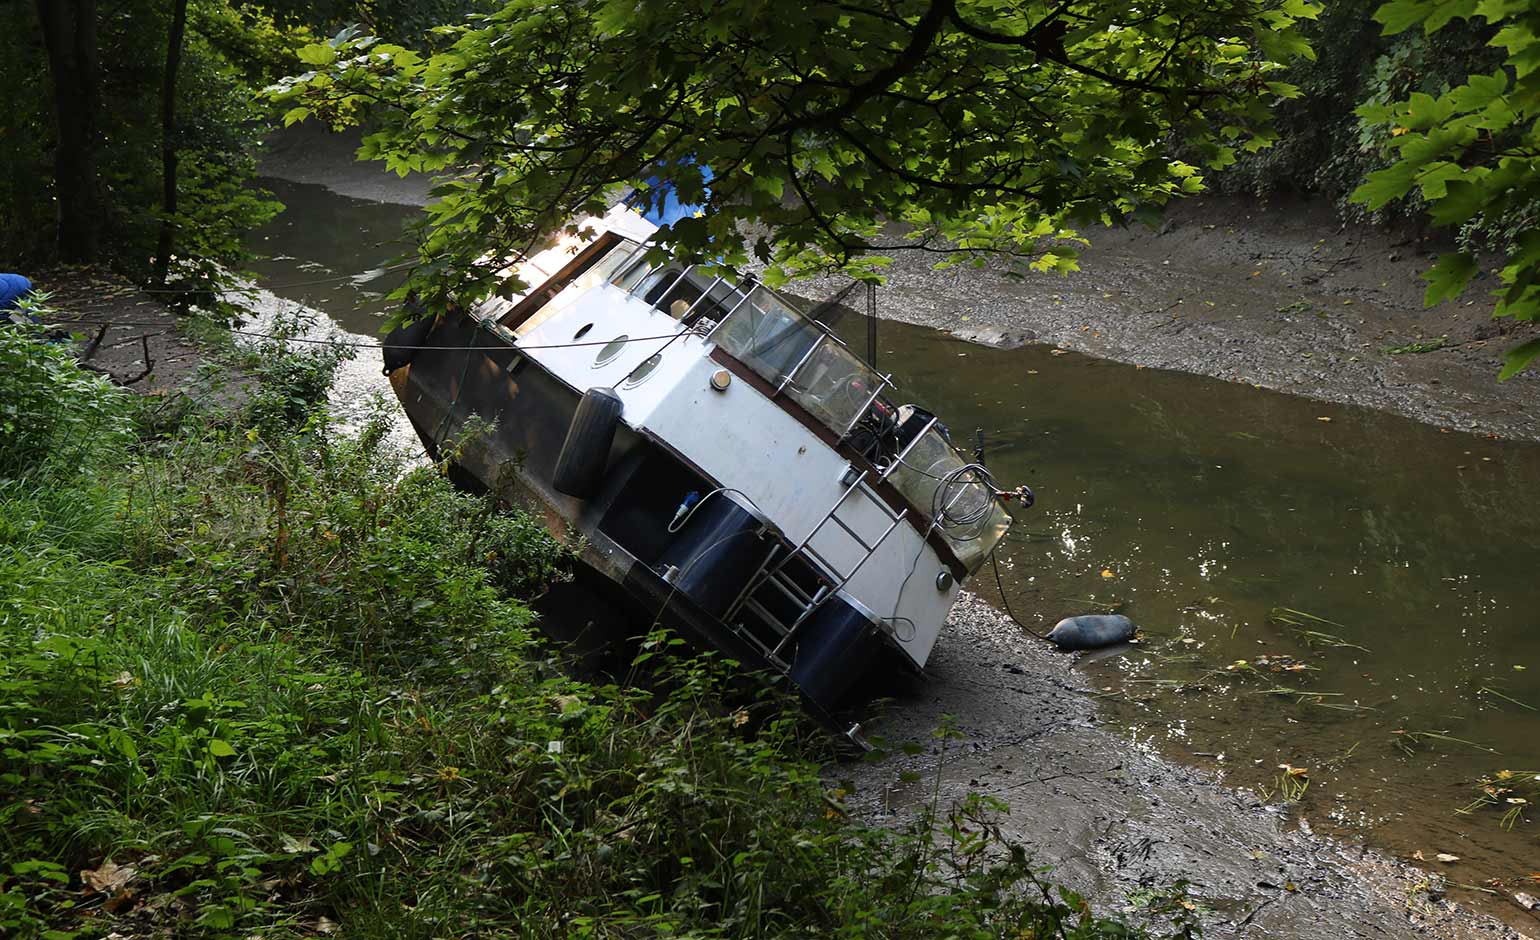 Software fault blamed for opening sluice gate which caused boats to sink